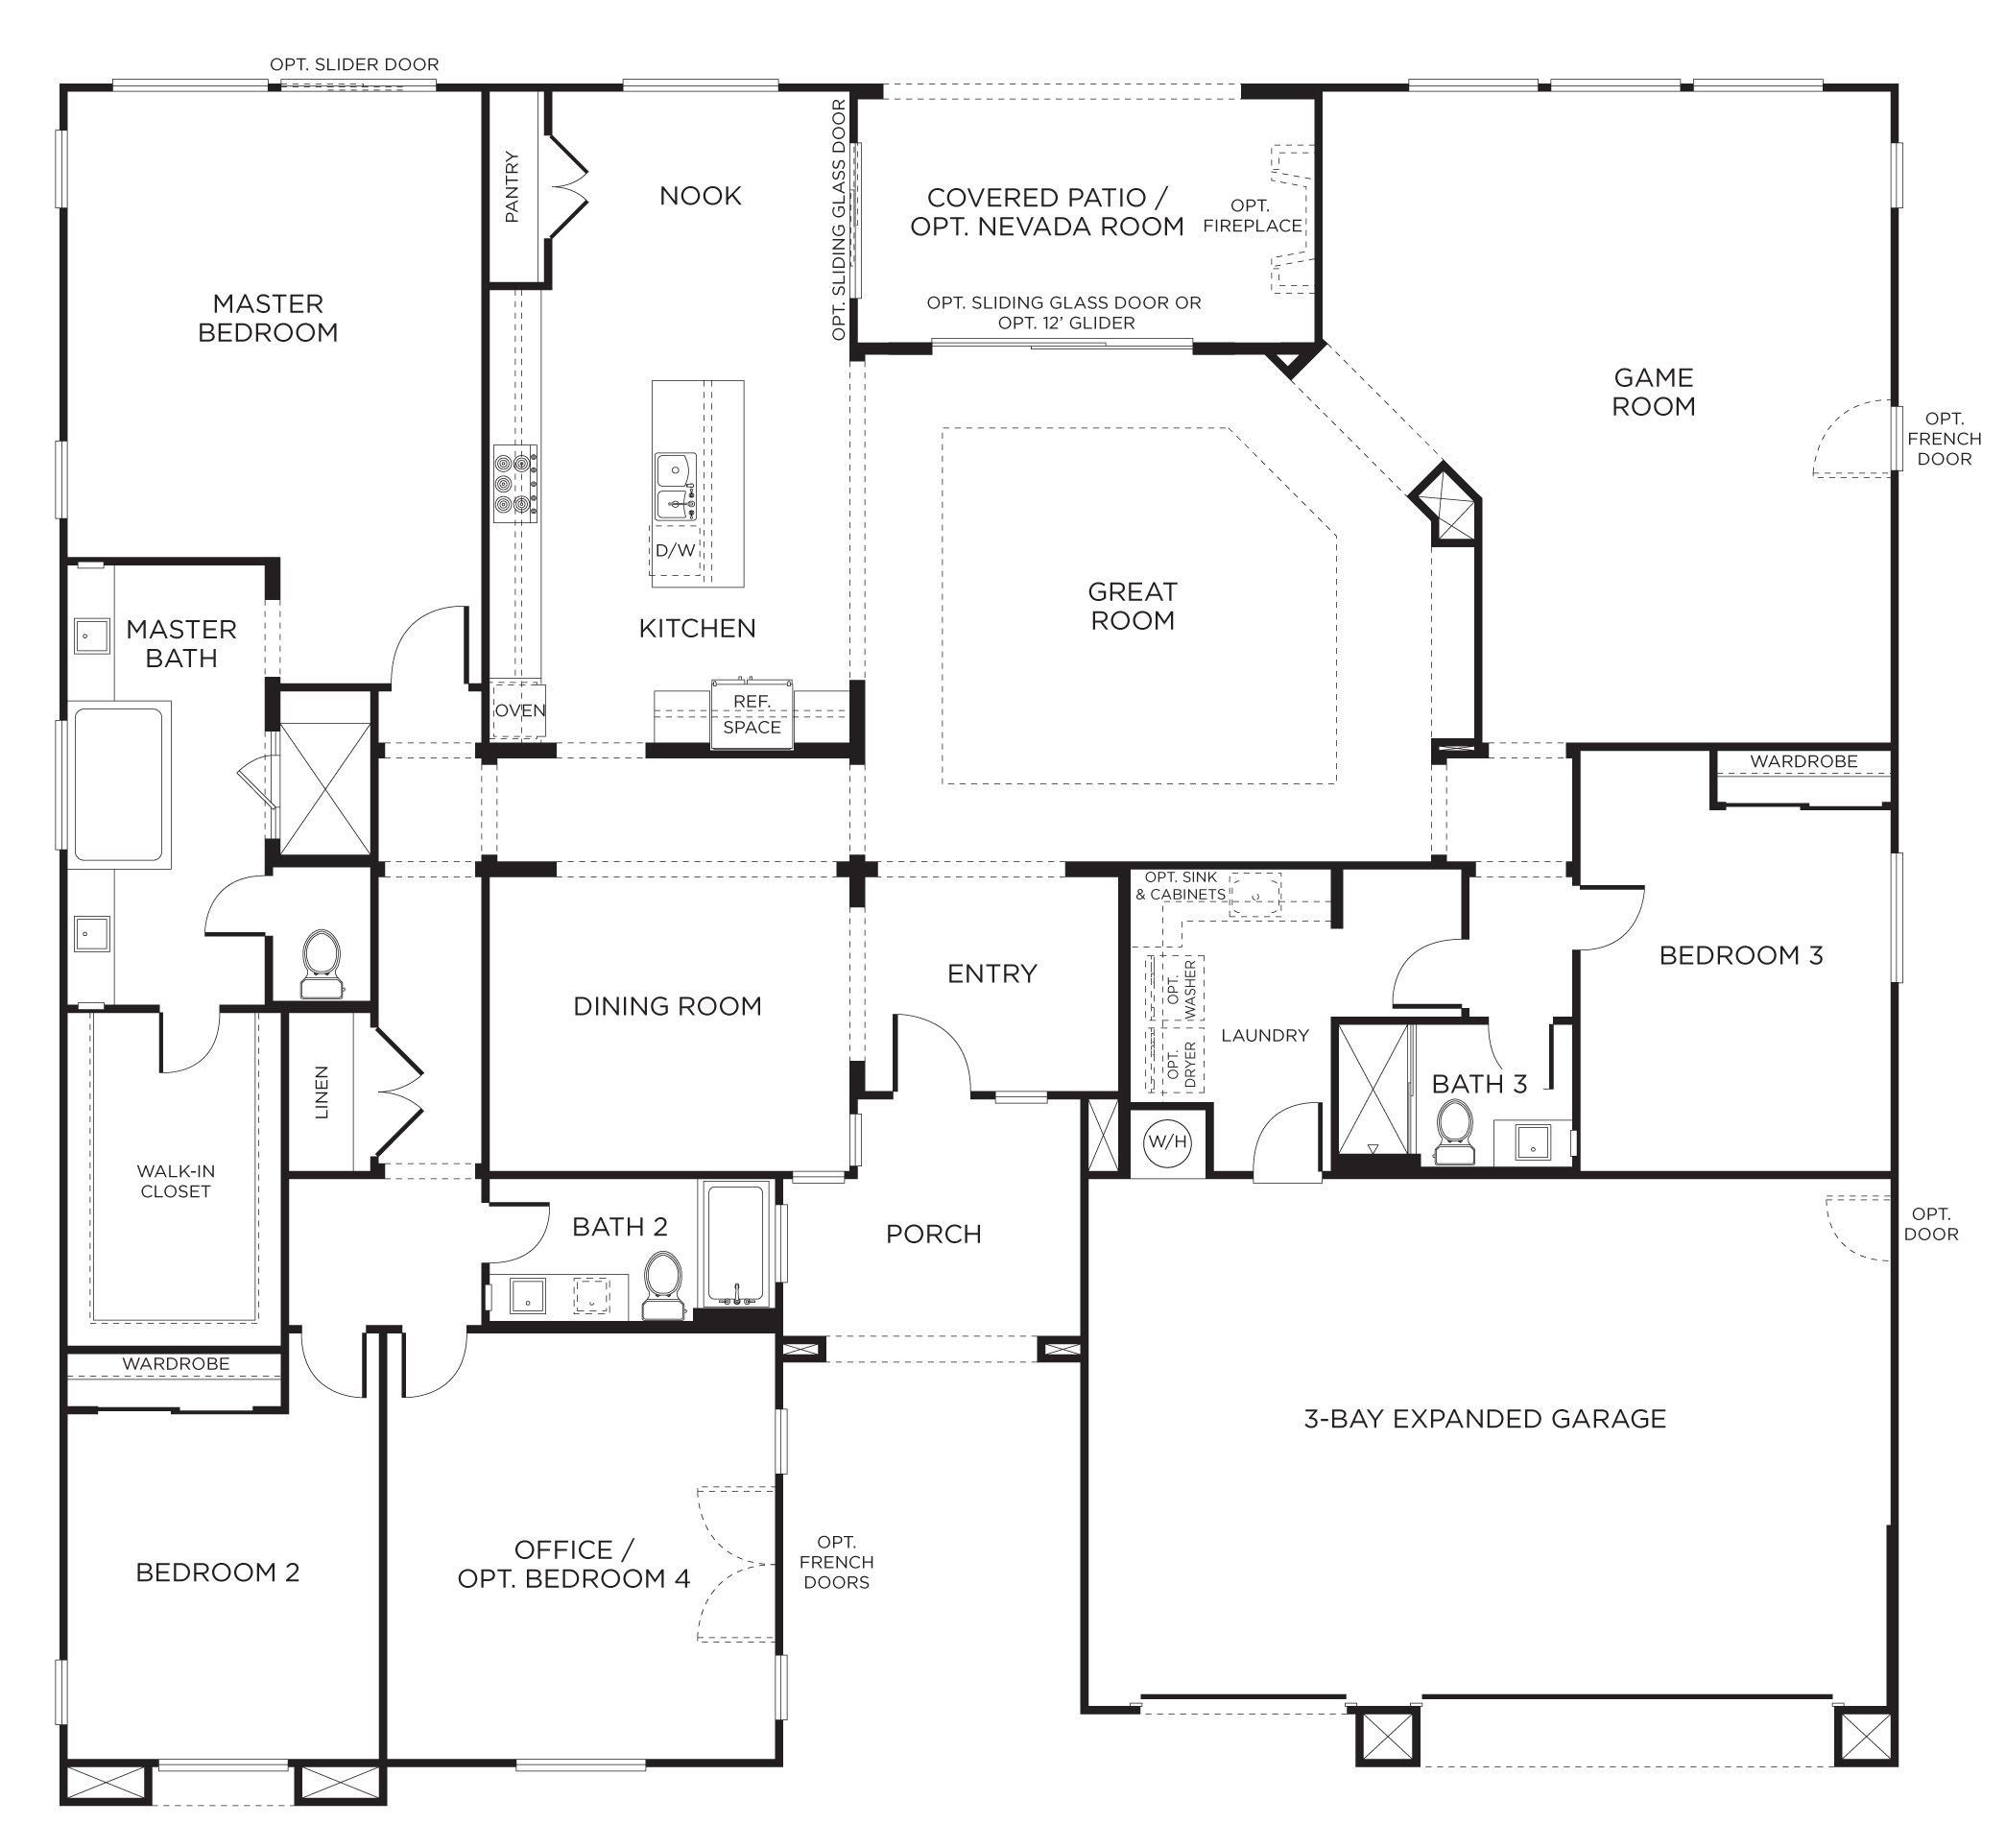 Floorplan 2 3 4 bedrooms 3 bathrooms 3400 square feet for One story 4 bedroom house floor plans